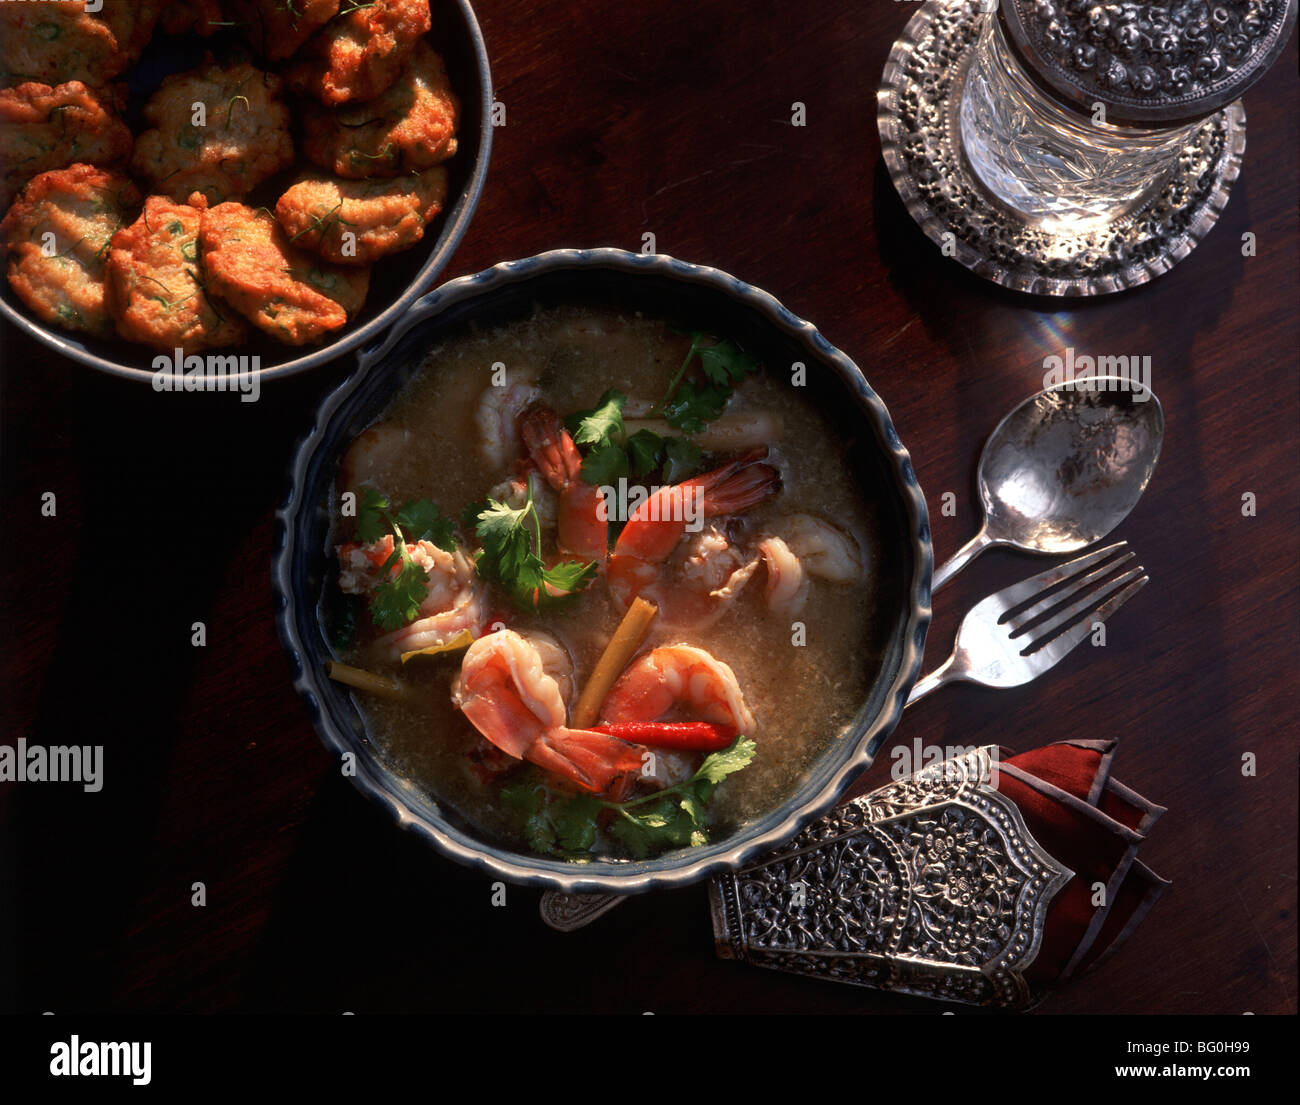 Tom Yum Goong Soup and Fish Cakes, Thailand, Southeast Asia, Asia - Stock Image